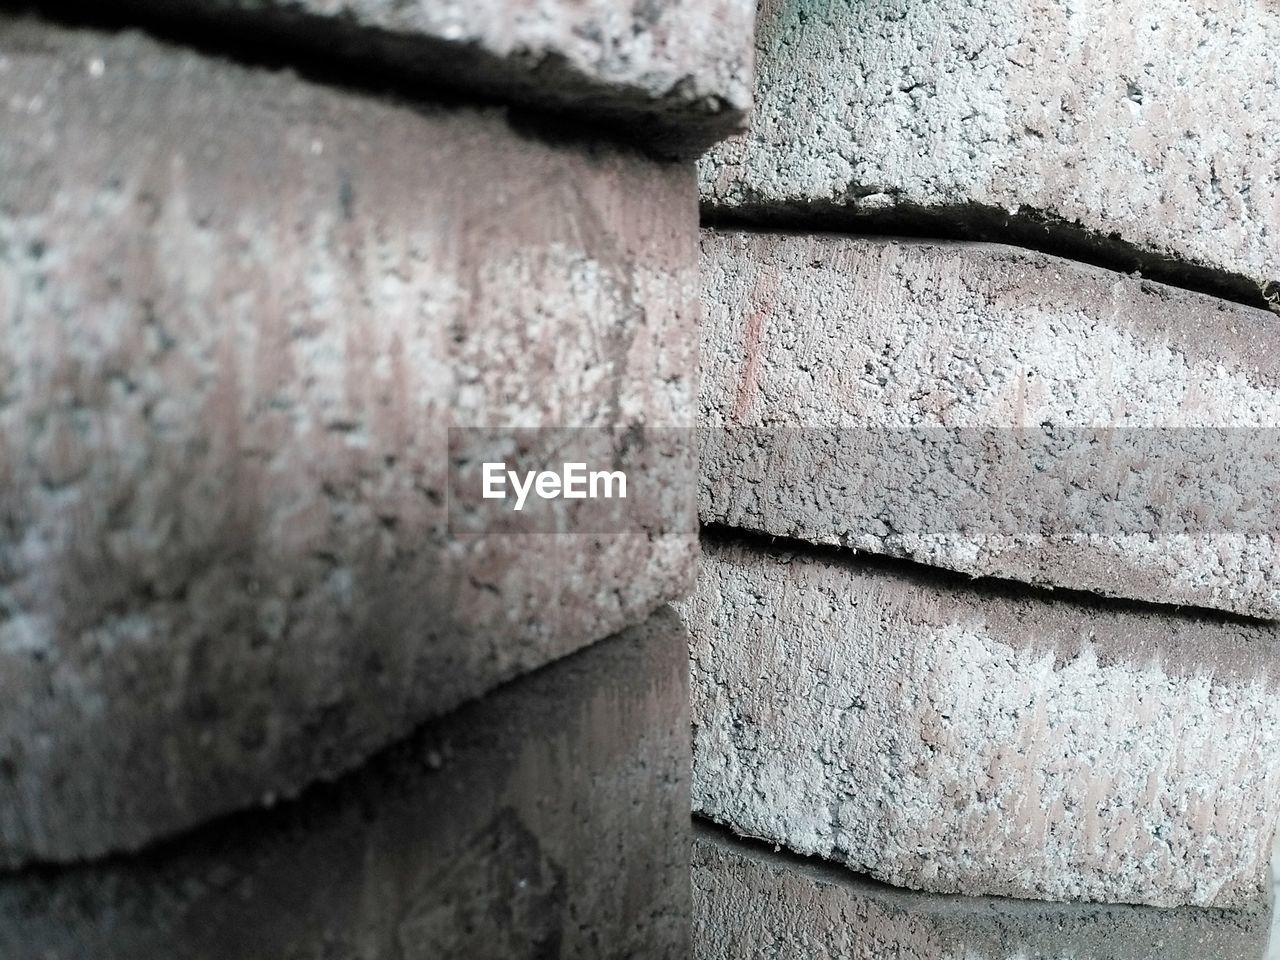 wall - building feature, close-up, architecture, no people, built structure, solid, wall, day, textured, focus on foreground, concrete, gray, stone material, old, selective focus, backgrounds, rough, pattern, outdoors, full frame, cement